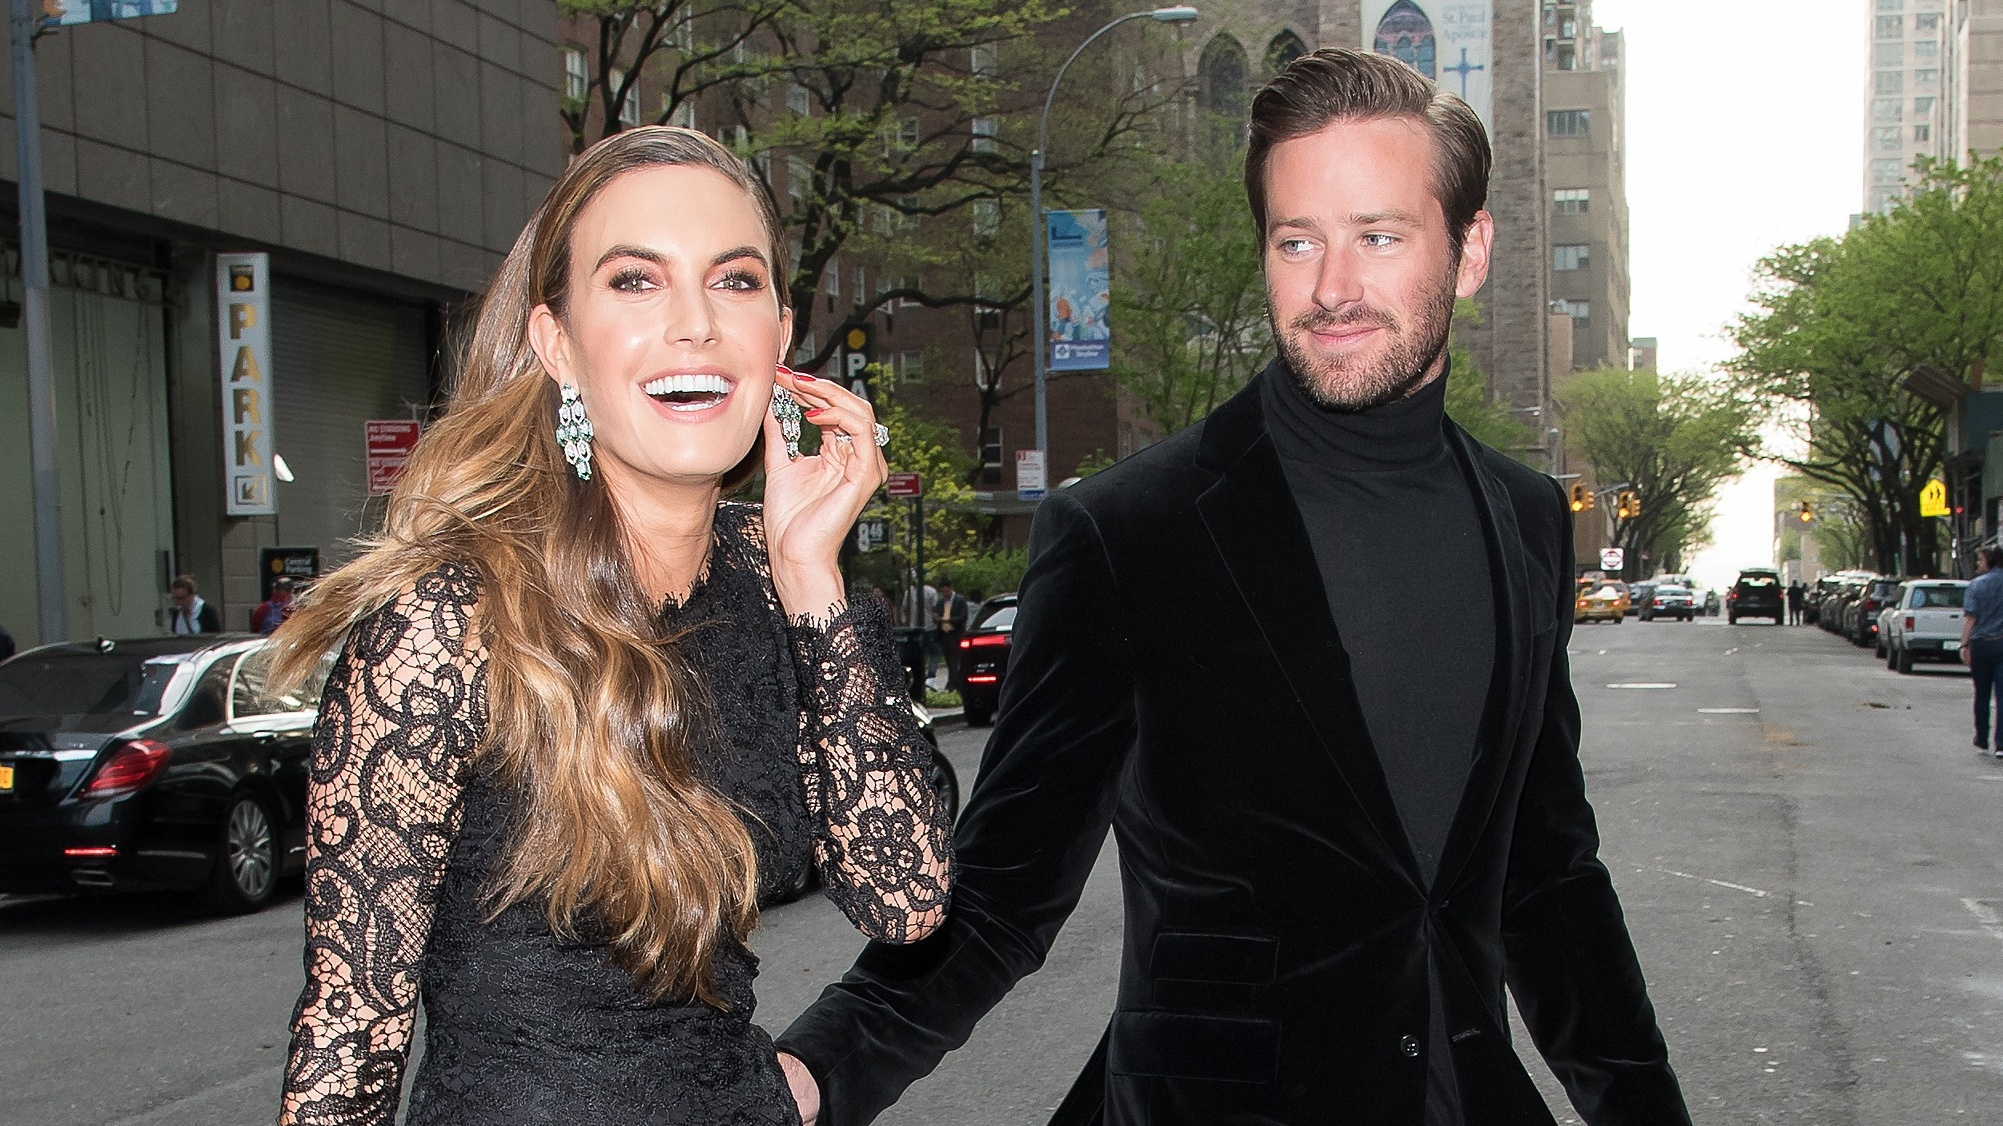 Armie Hammer's Former Wife Elizabeth Chambers Breaks Her Silence On The Scandal In An Instagram Comment